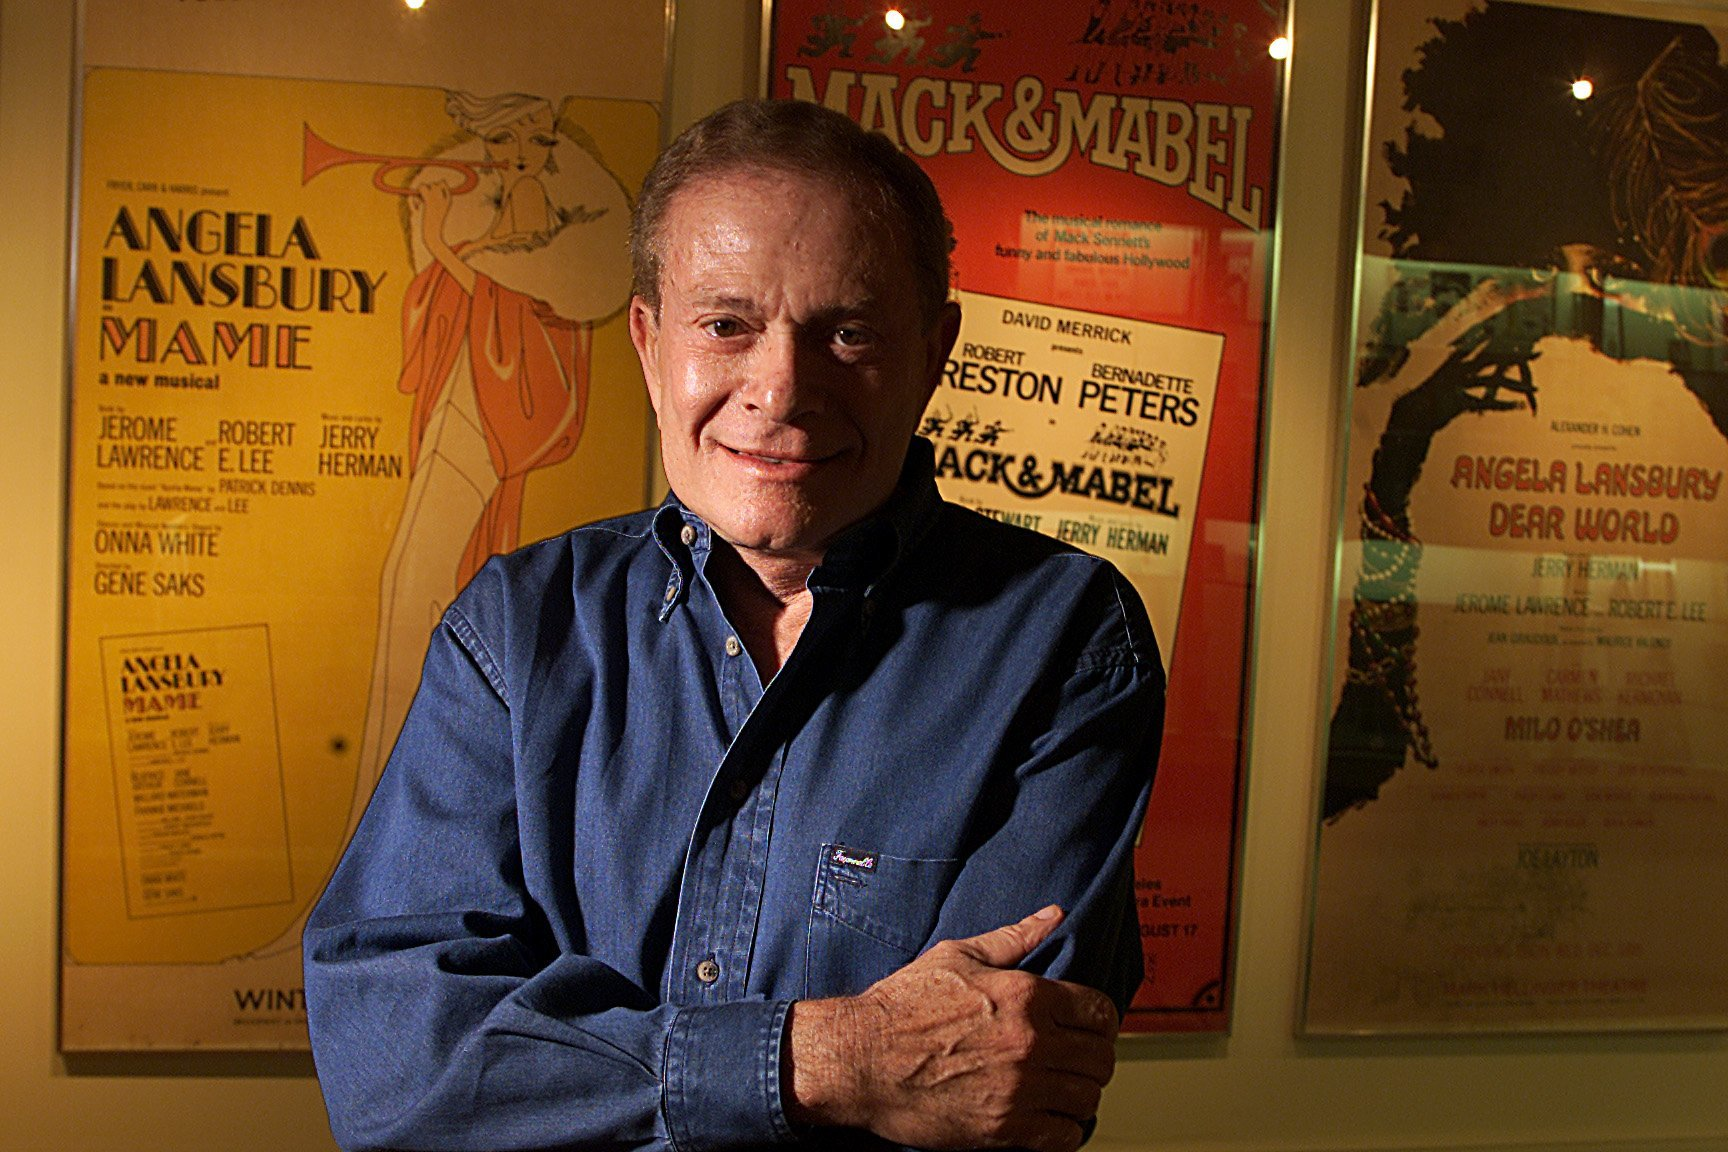 """Jerry Herman, the beloved Broadway composer and lyricist who penned musicals like """"Hello, Dolly,"""" """"Mame"""" and """"La Cage aux Folles,"""" has died. He was 88. (Credit: Robert Gauthier/Los Angeles Times via Getty Images)"""